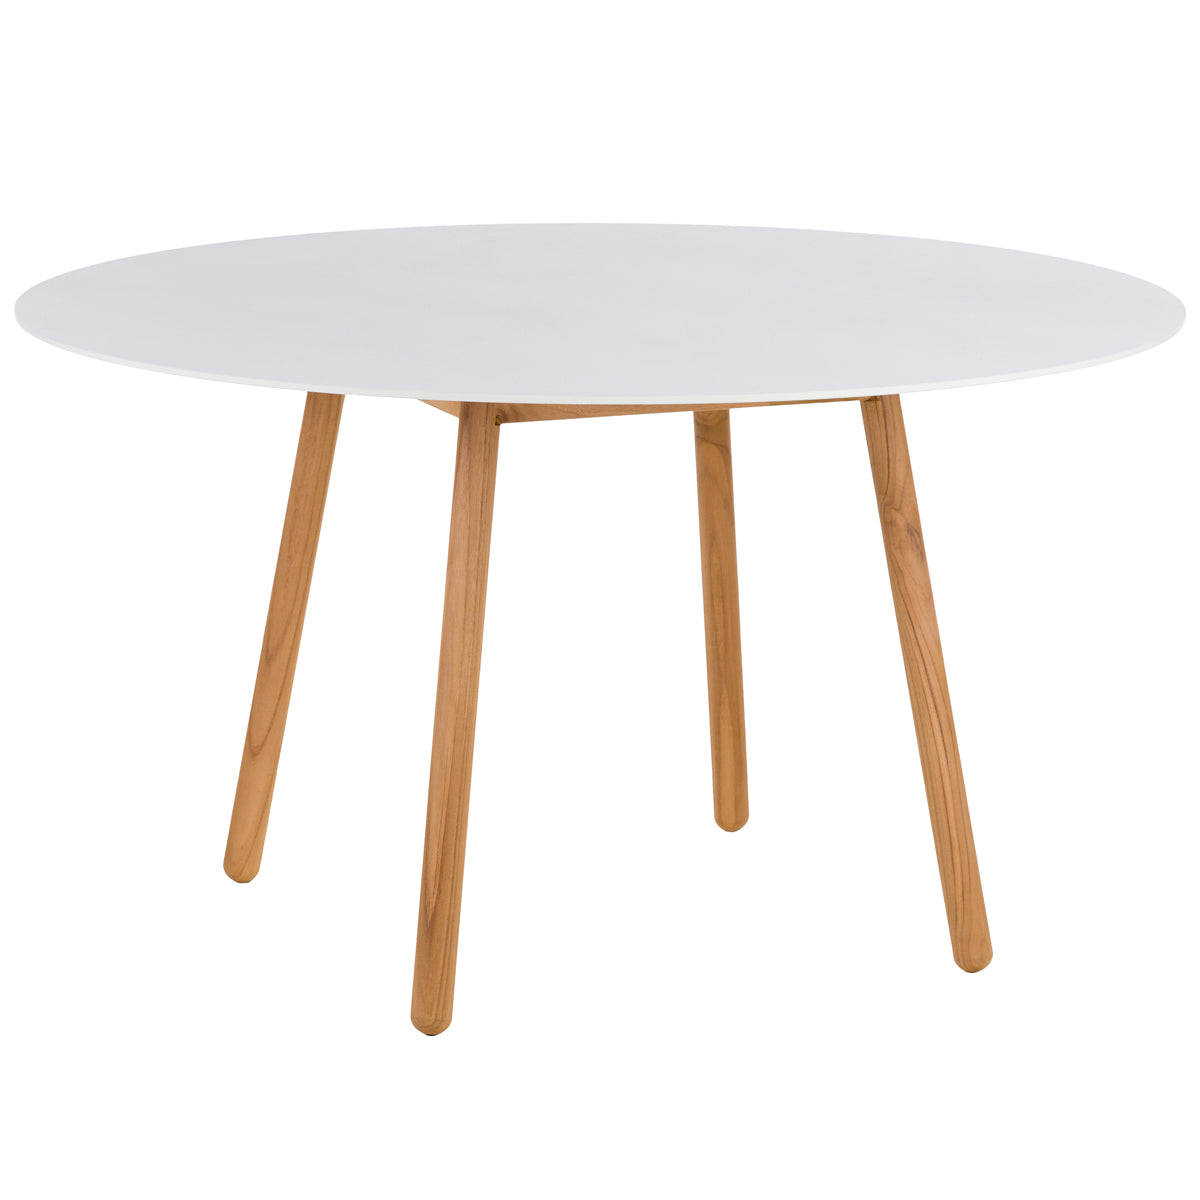 07c771585c9 Round Outdoor Dining Table by POINT